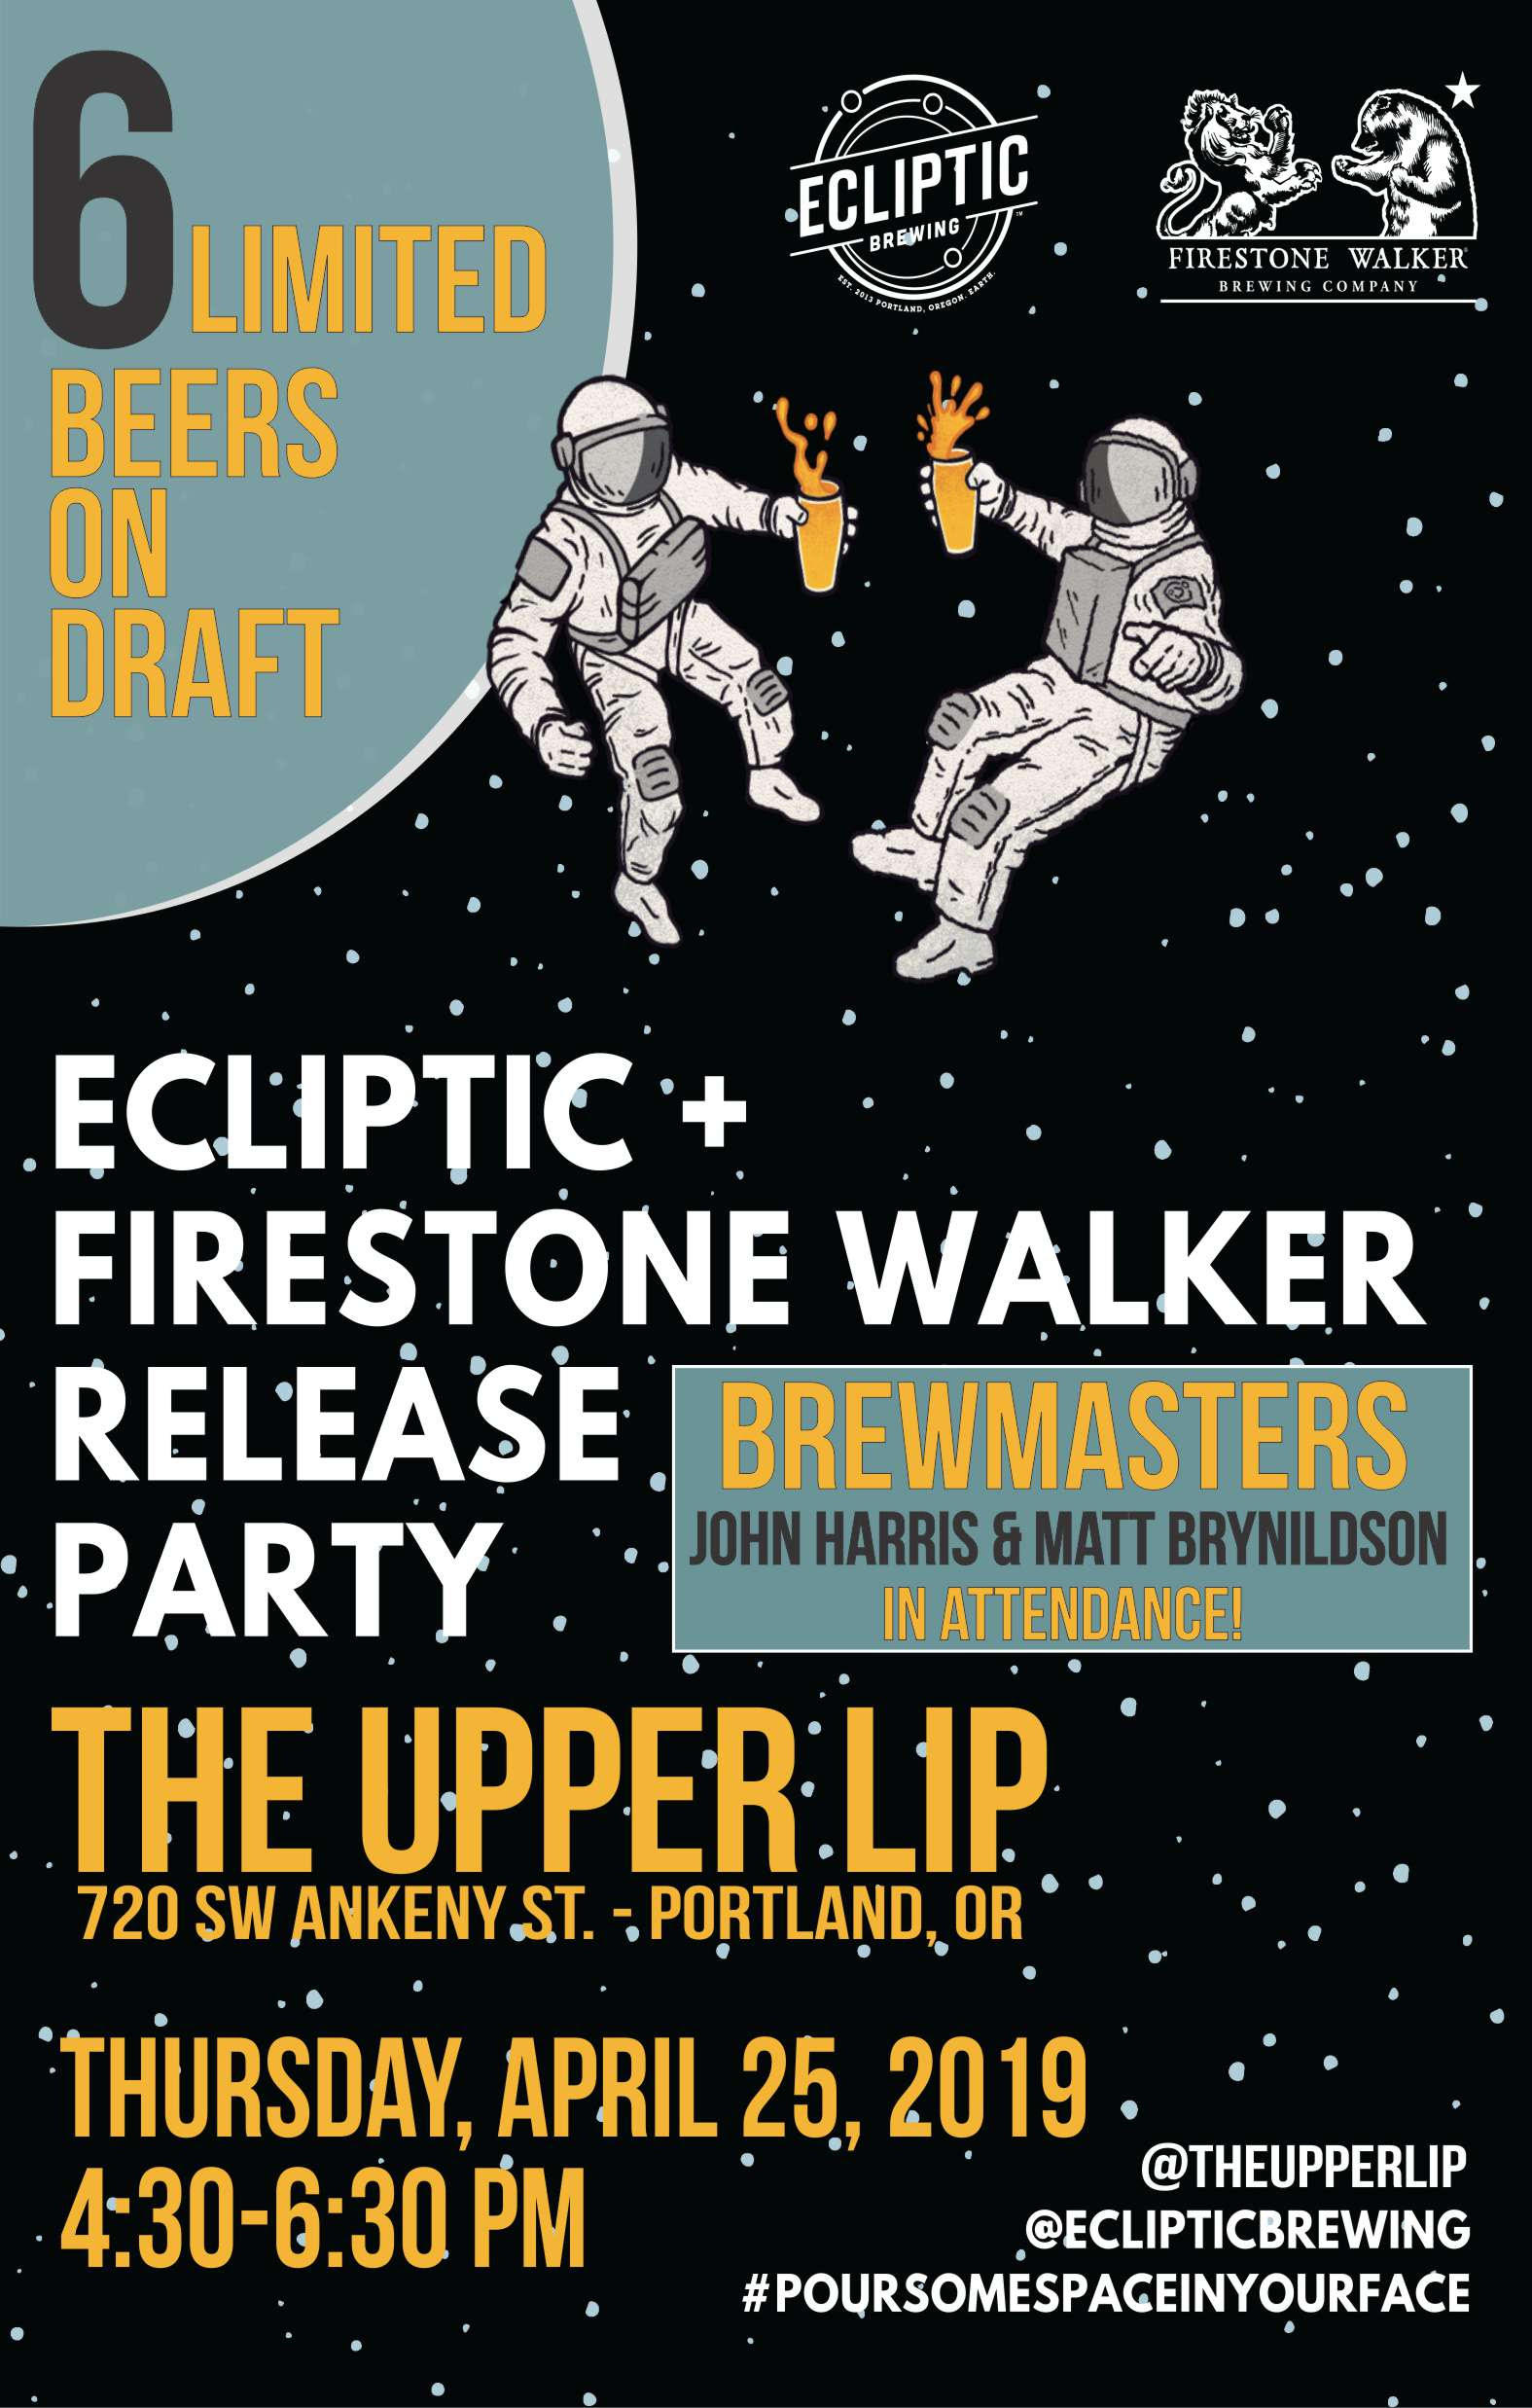 Ecliptic Brewing + Firestone Walker Brewing Cosmic Release Party at The Upper Lip